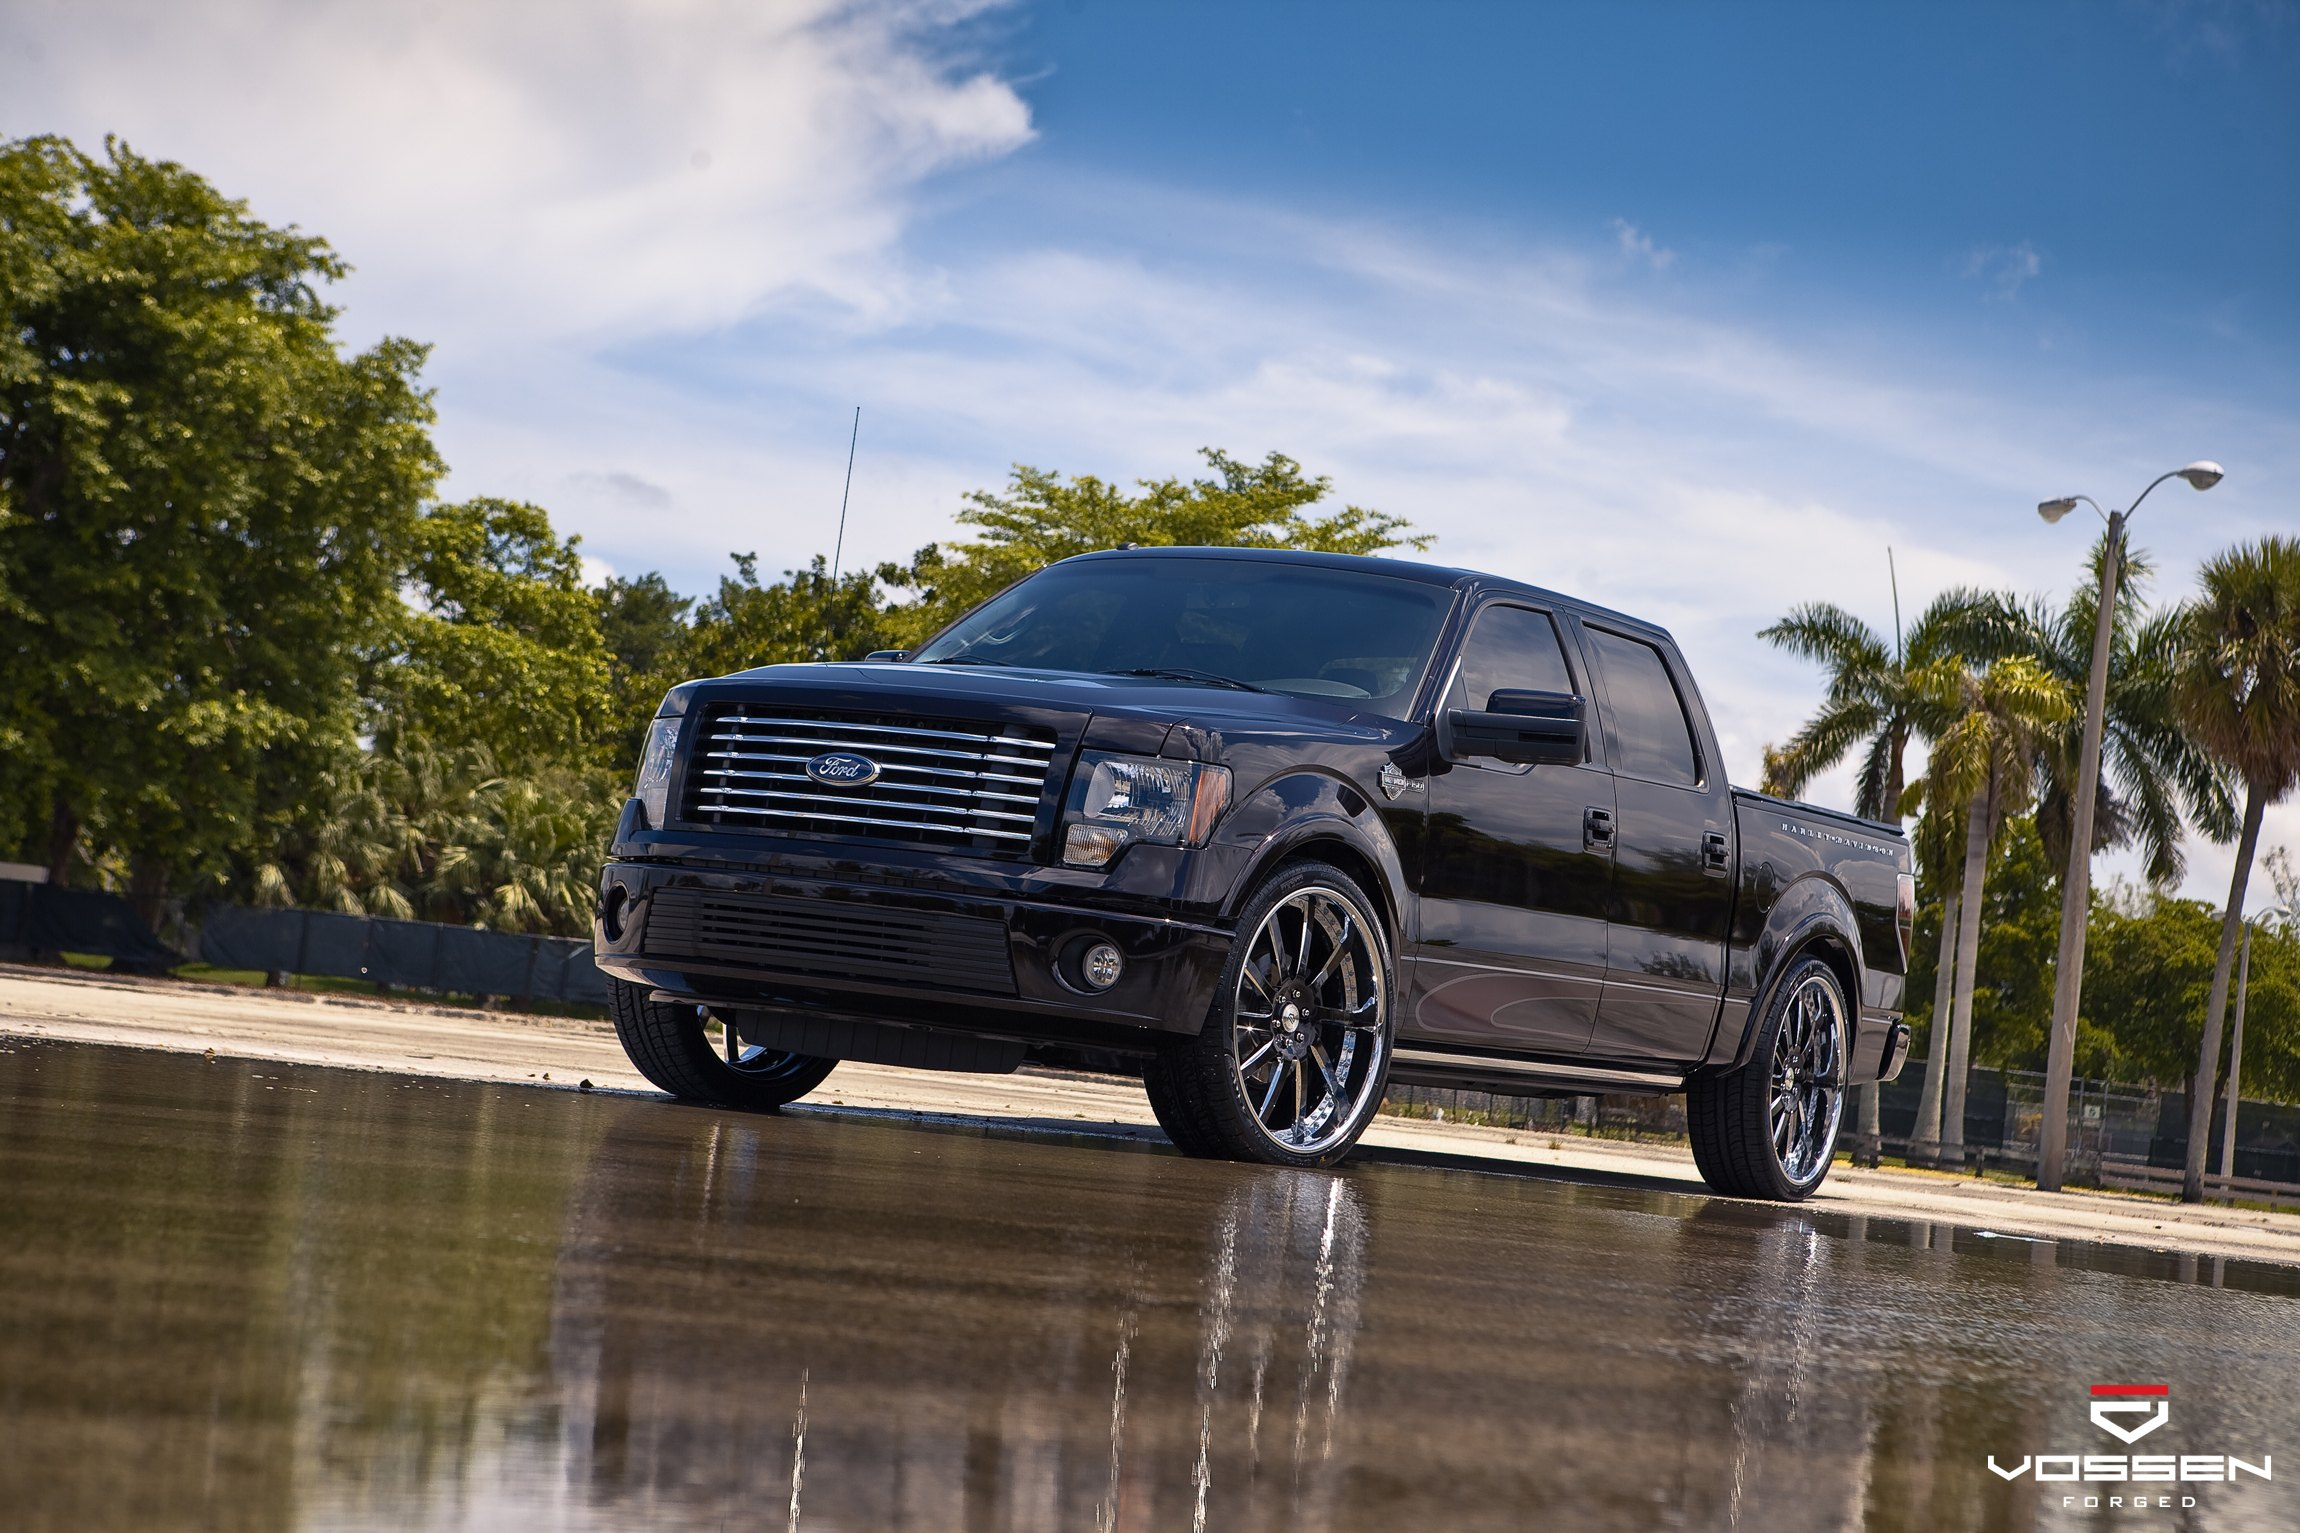 Black Ford F-150 with Chrome Billet Grille - Photo by Vossen